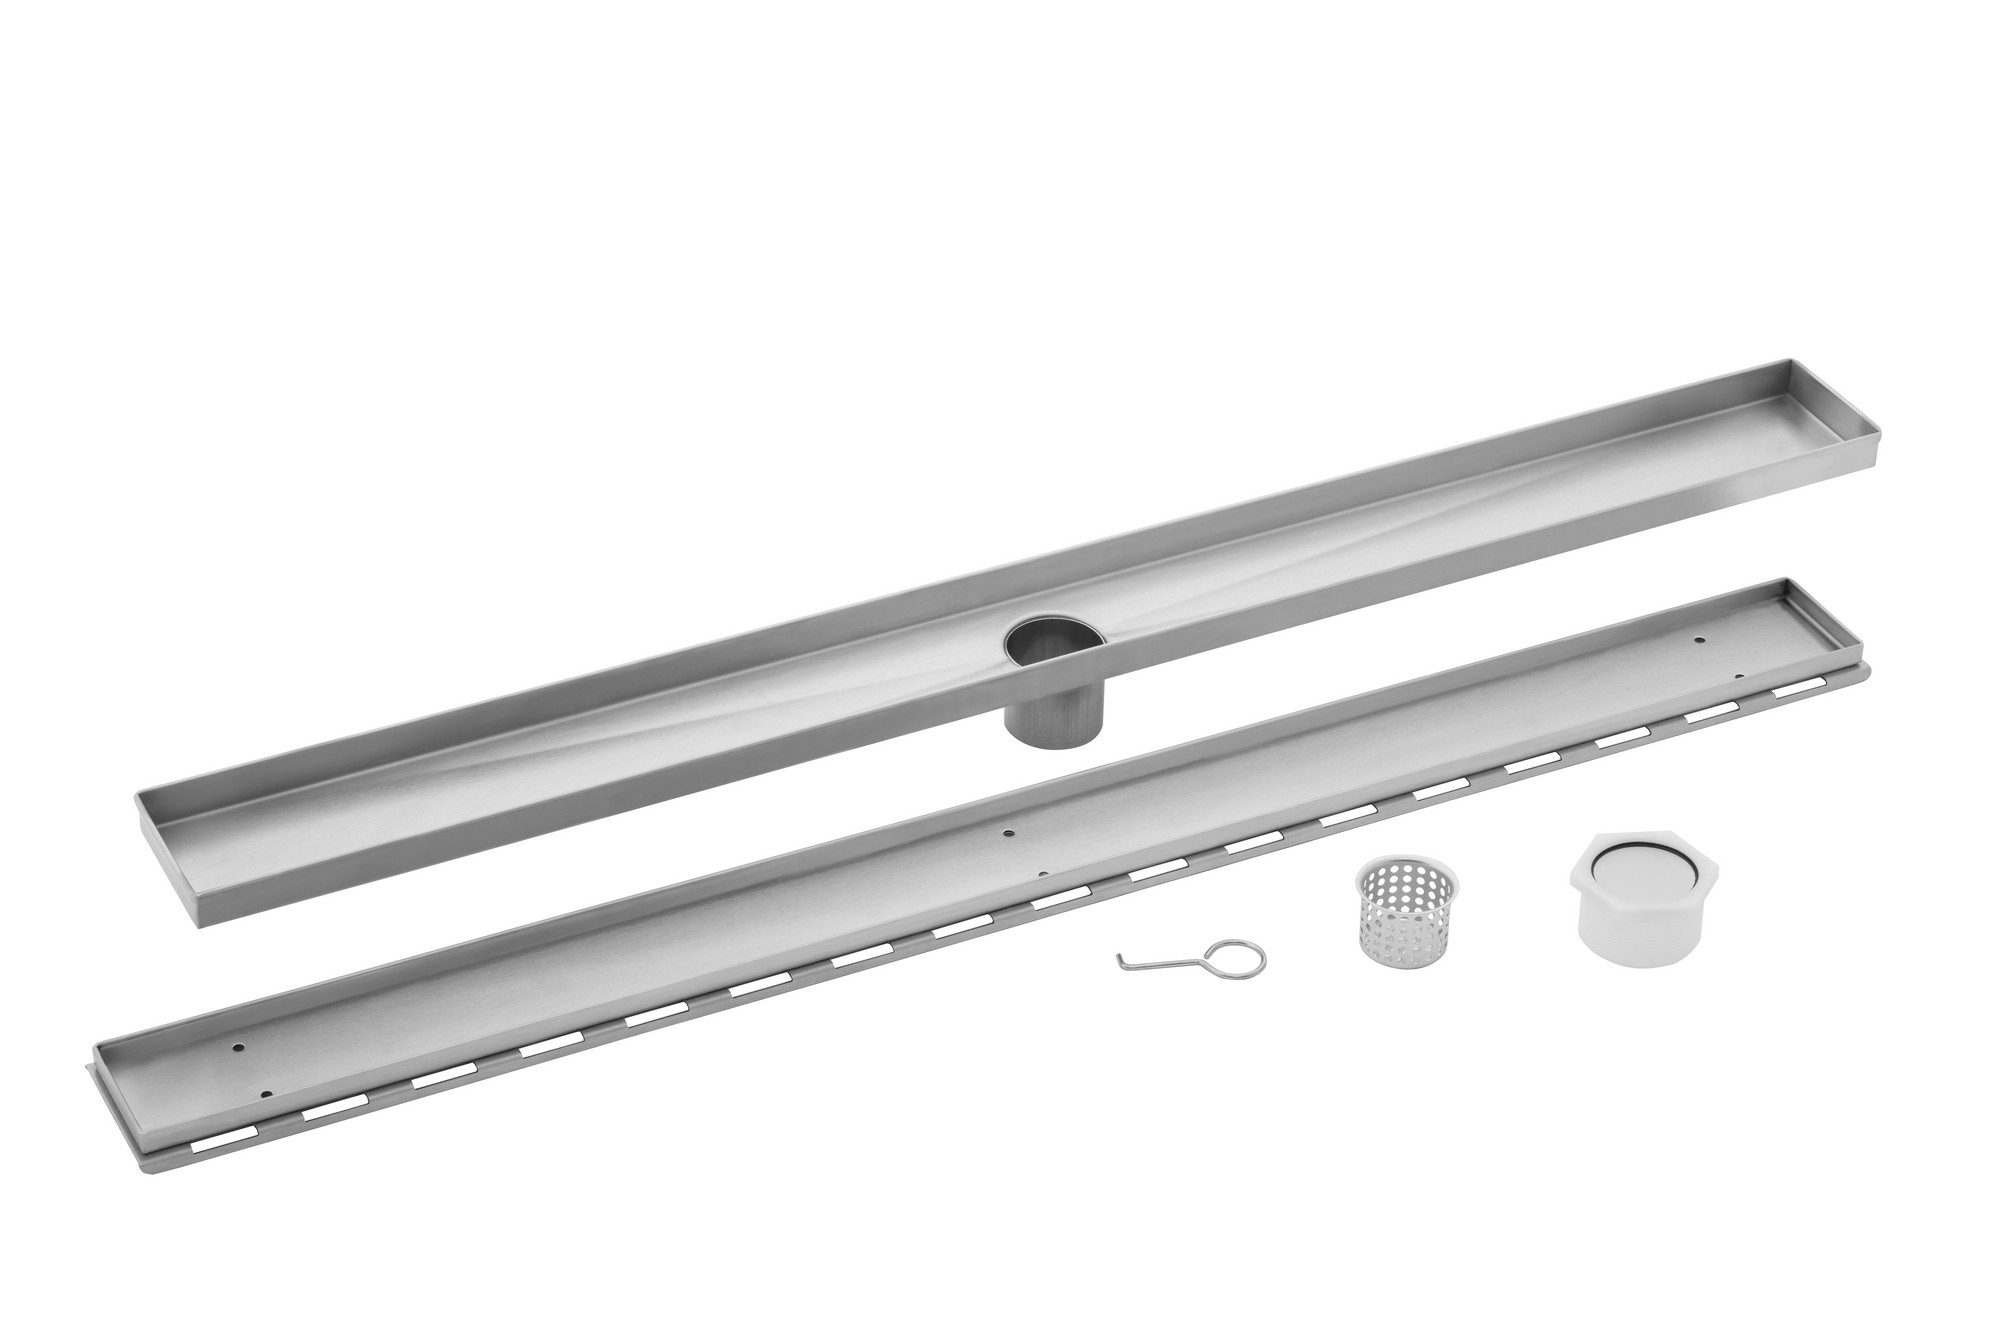 Cahaba CAHTI60 60 Inch Stainless Steel Tile Insert Linear Shower Drain